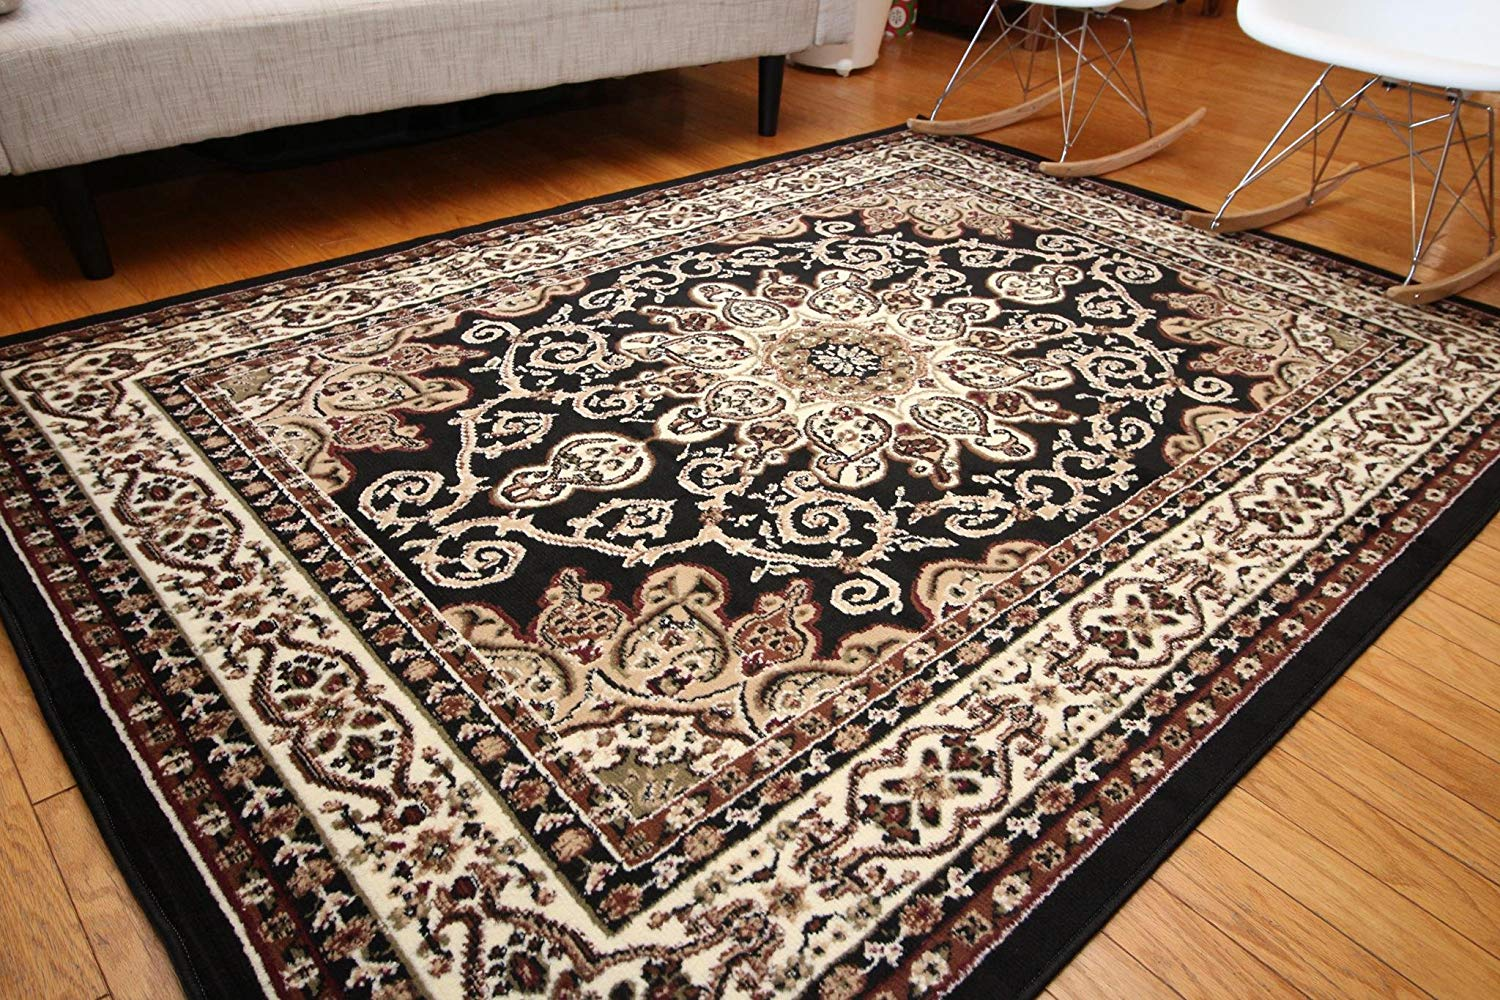 Persian area rugs amazon.com: generations new oriental traditional isfahan persian area rug,  2u0027 x 3u0027, SILROVU